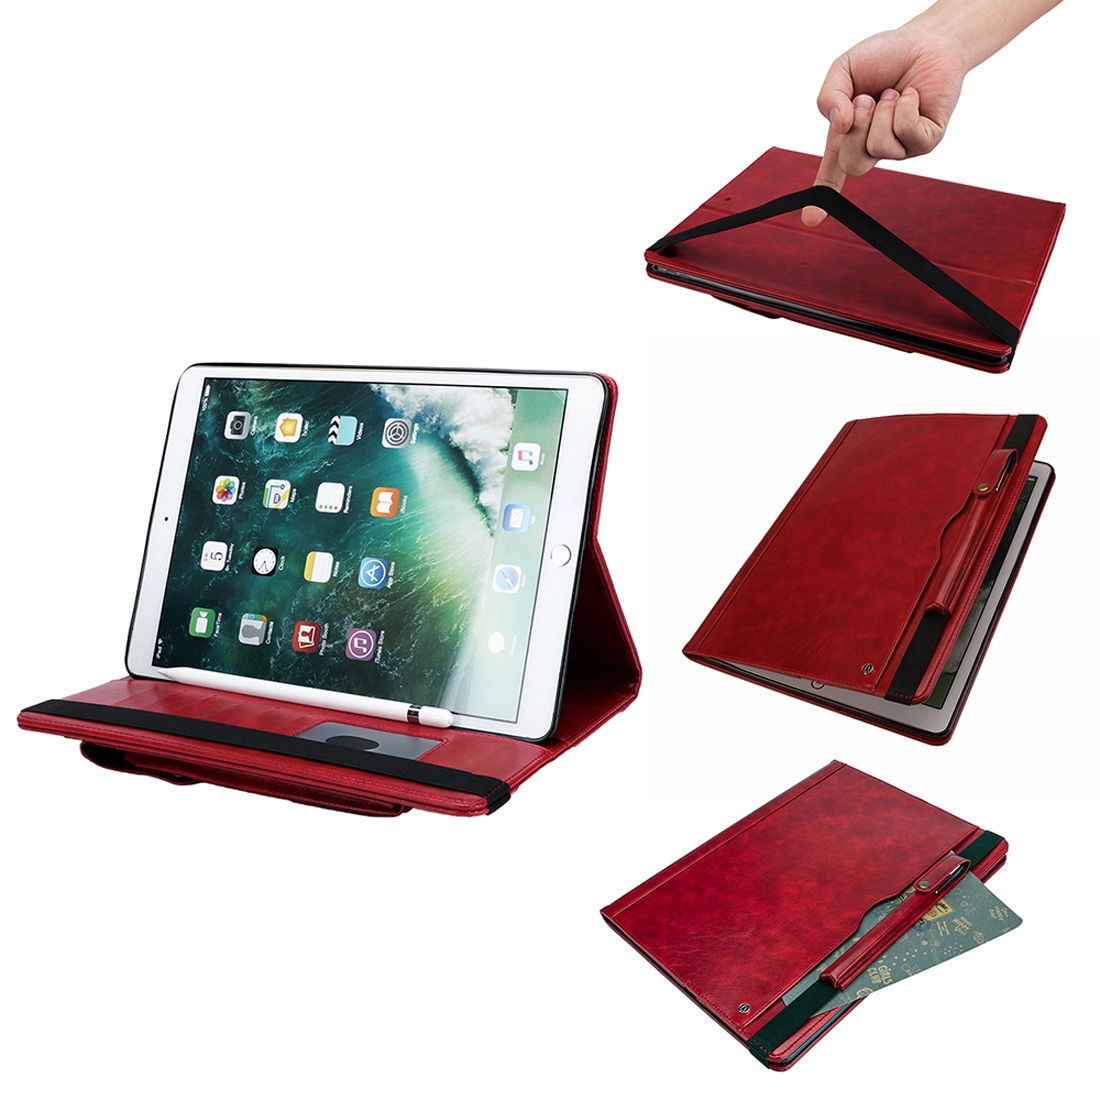 Leather iPad Pro 12.9 Inch Case (2015) (2017), Double Sleeves, Pen Holders, Slim Profile (Red)